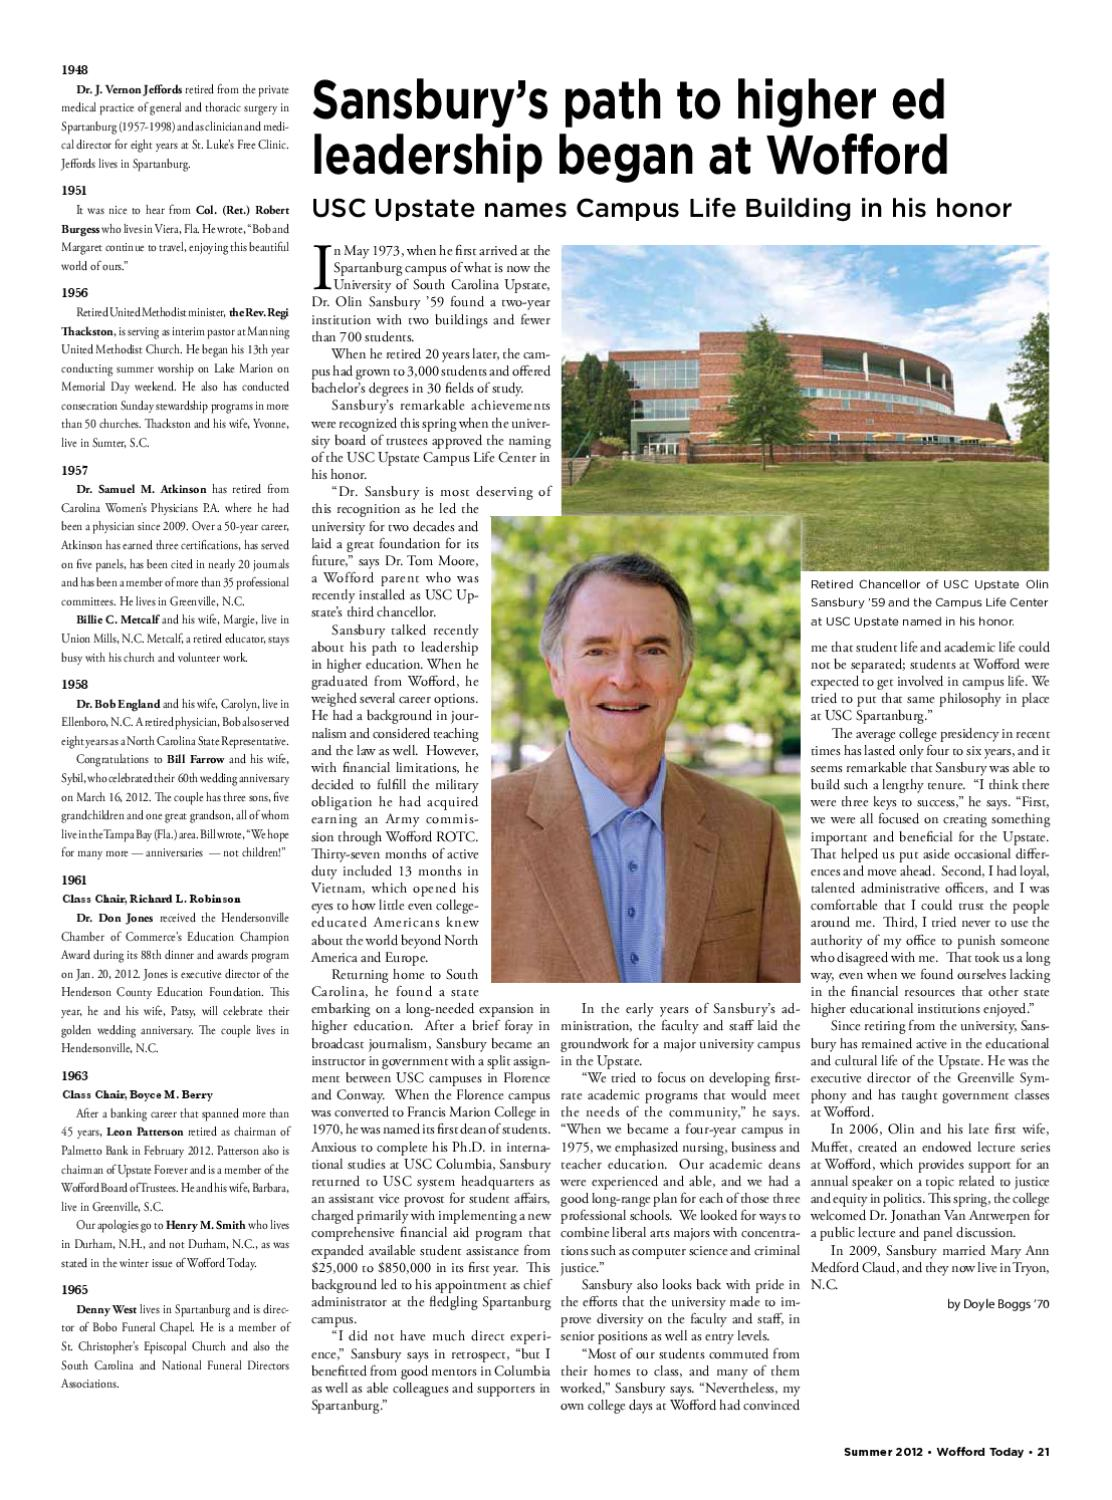 Summer 2012 Wofford Today by Wofford College - issuu